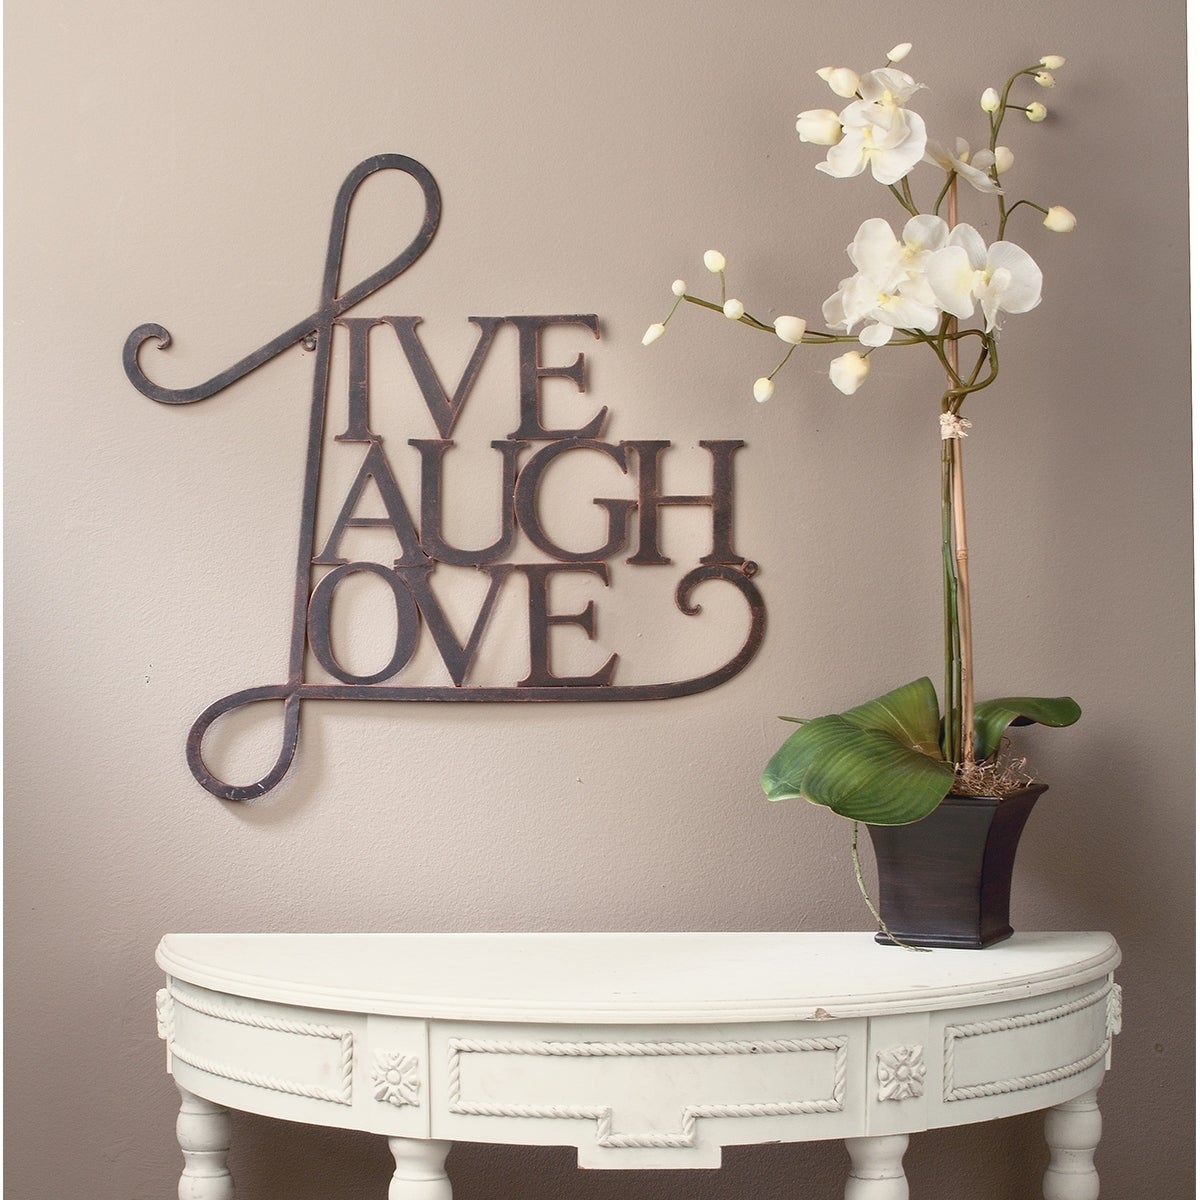 Live Laugh Love Wall Decor Antique Copper White Finish Free Shipping On Orders Over 45 21469500